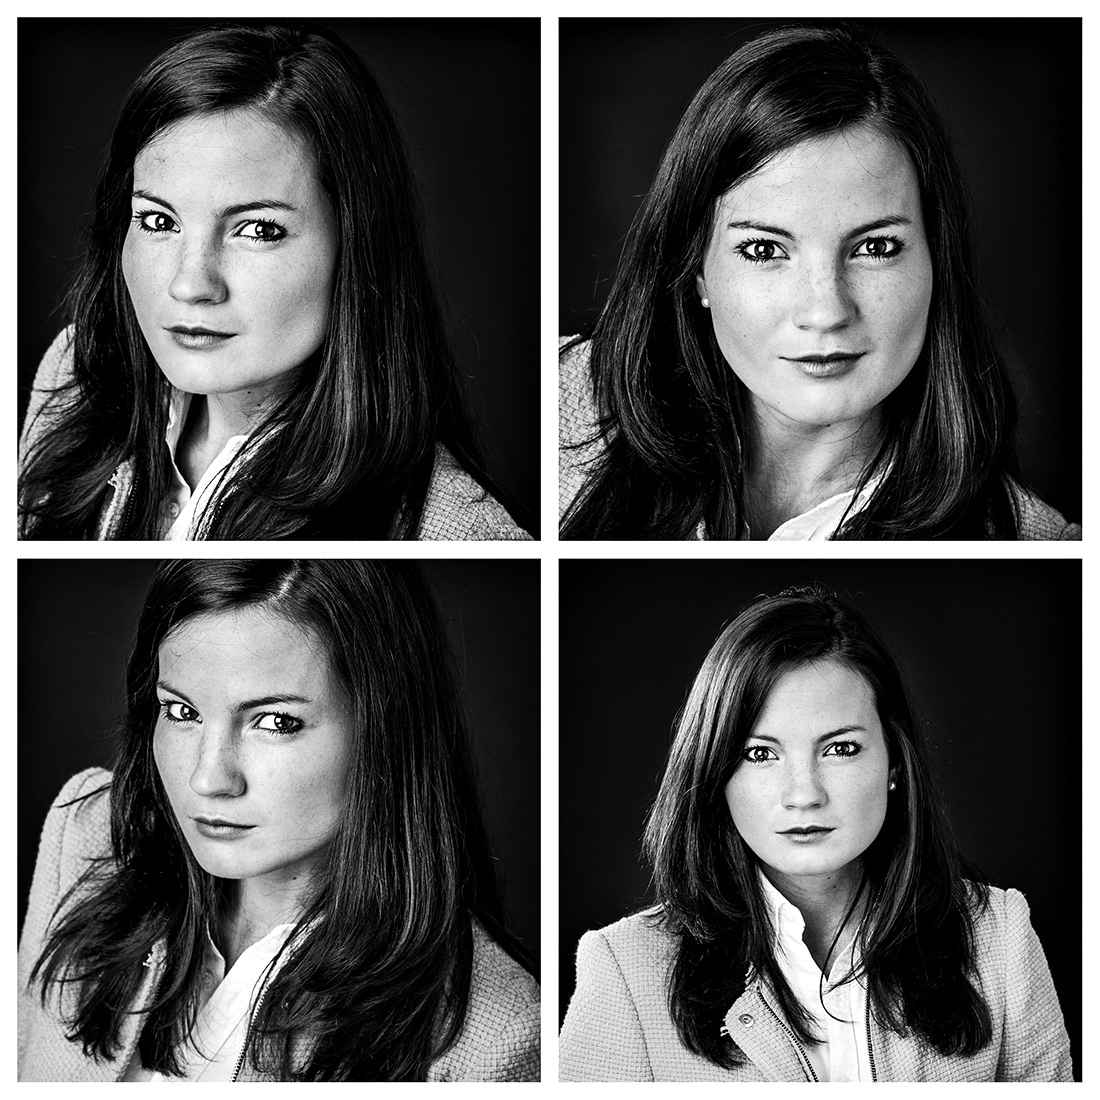 professional photographer luxembourg. professional headshots executive portraits